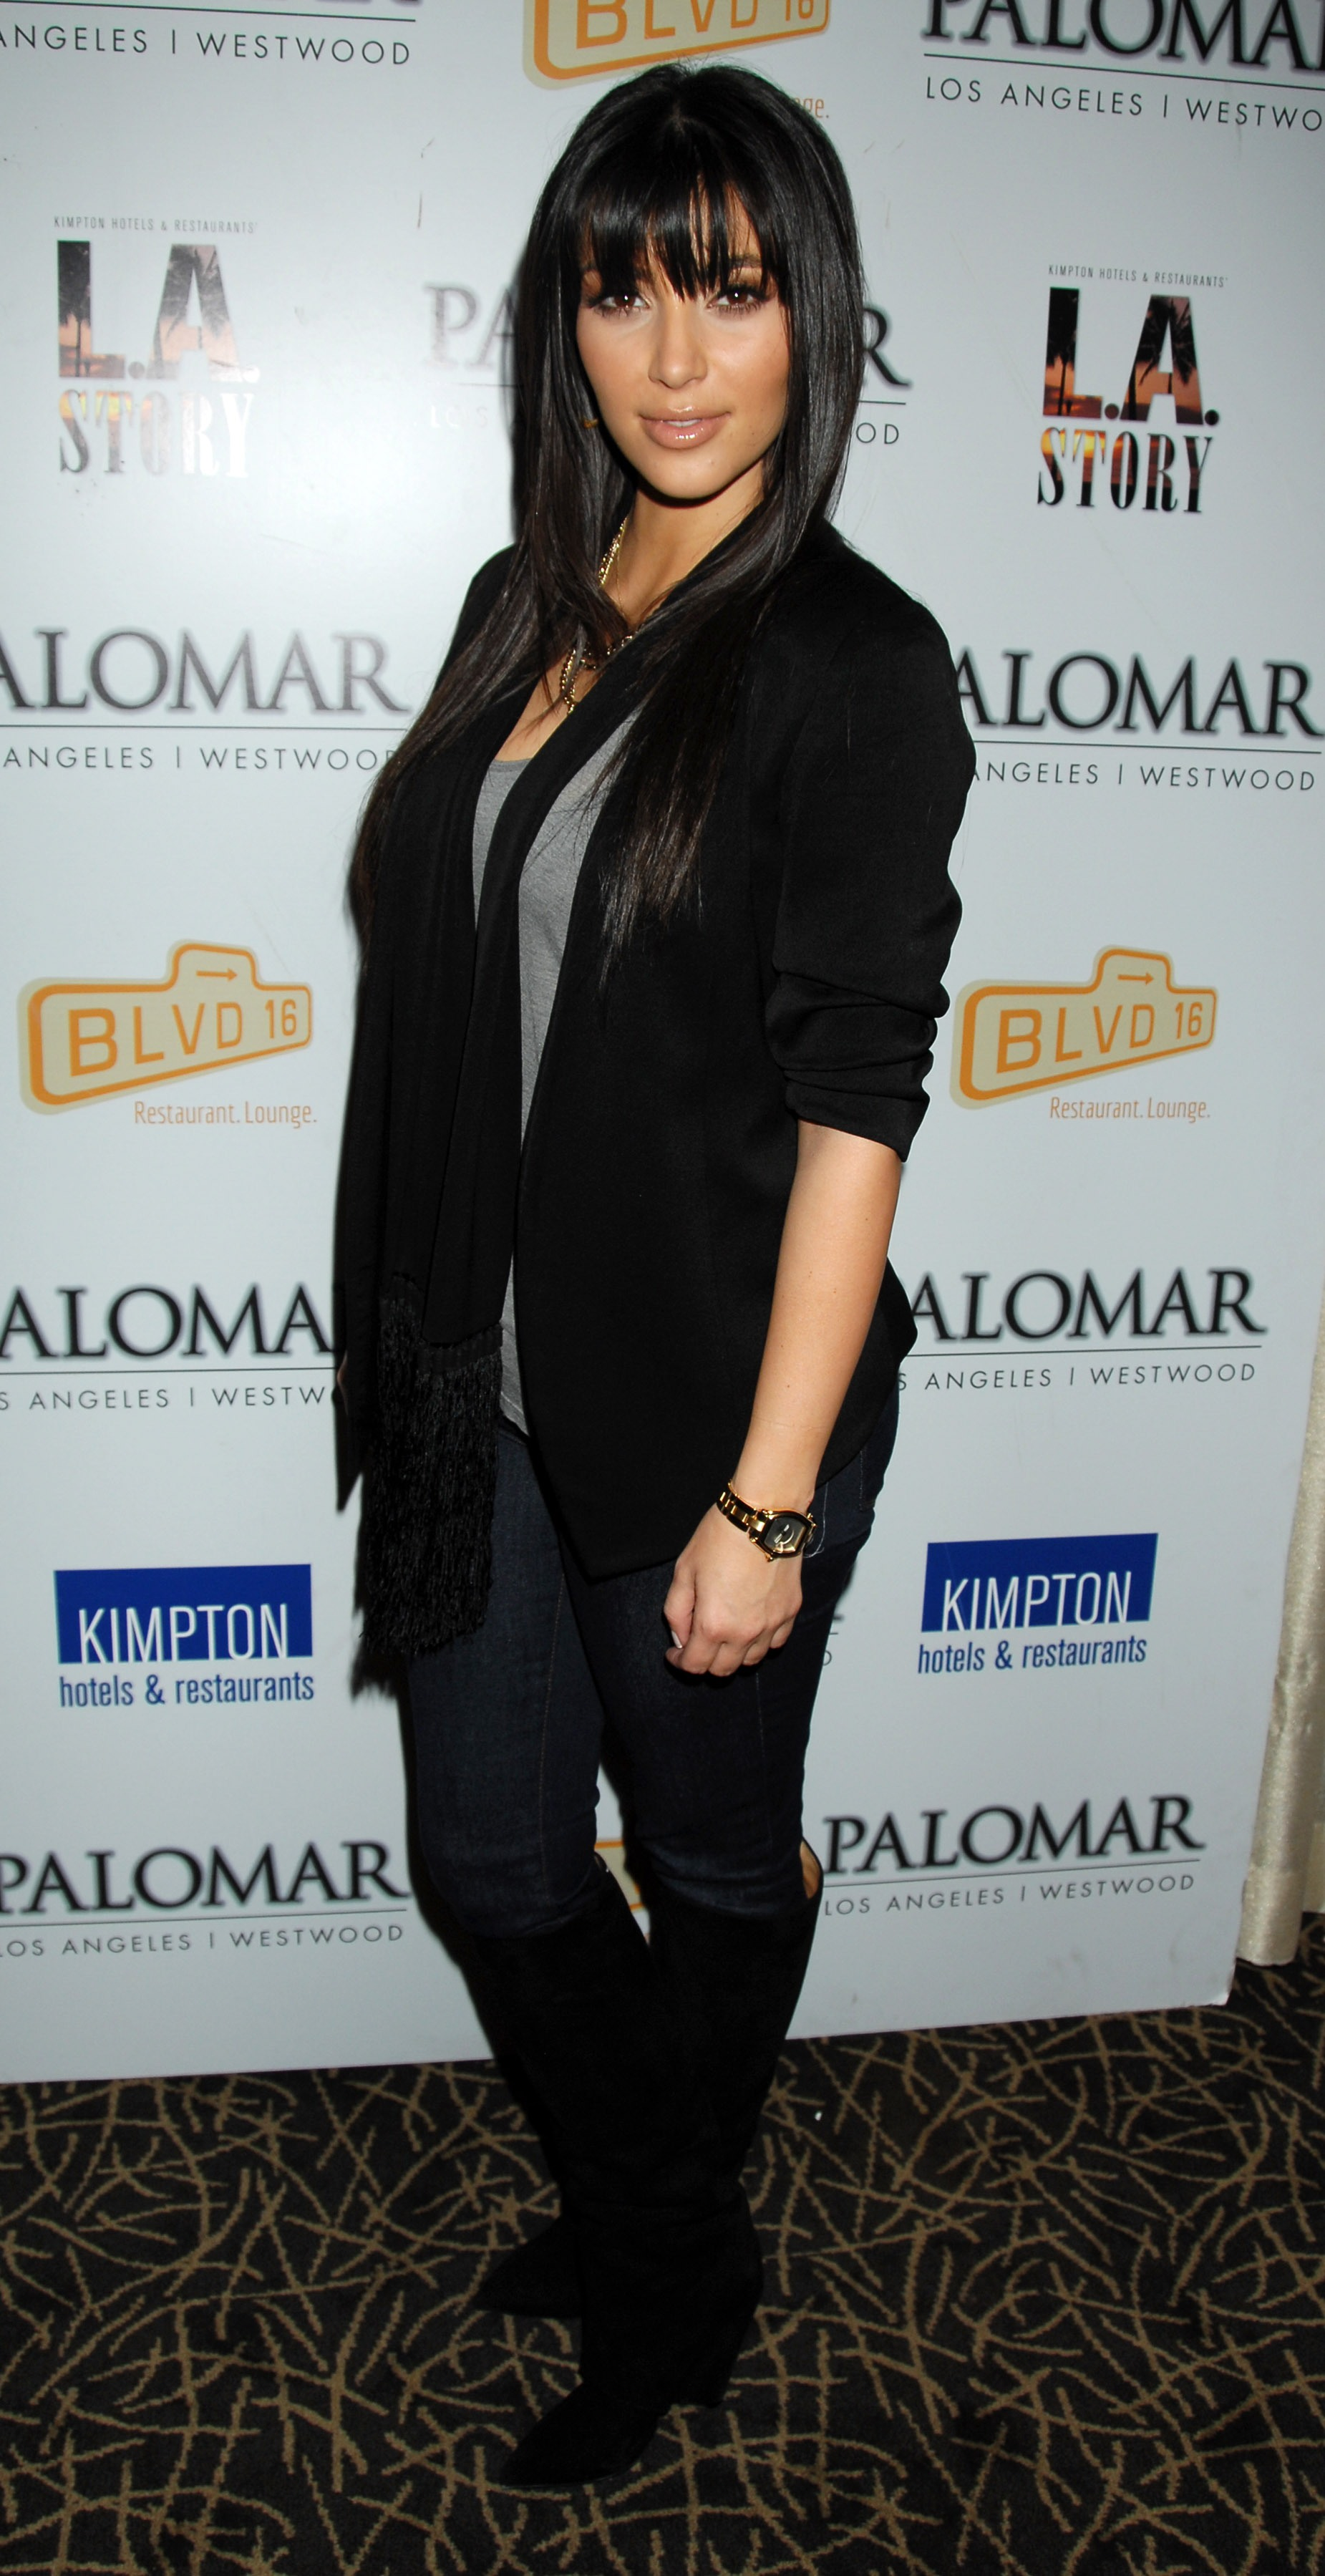 03333_Kim_Kardashian_2008-12-08_-_A_Night_For_Change_benefiting_Alternative_Intervention_Models_in_LA_375_122_2lo.jpg